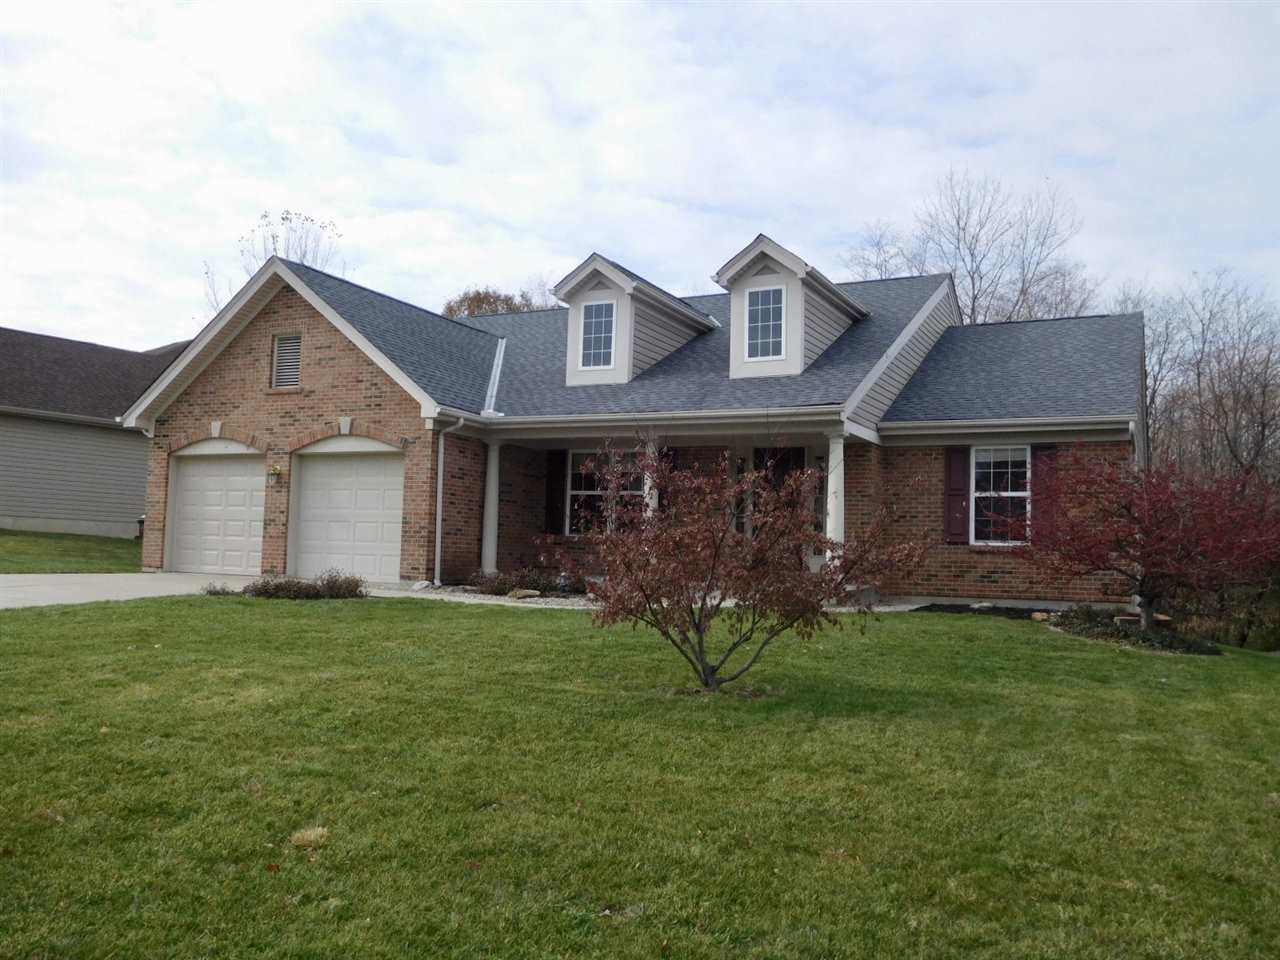 Photo 2 for 6315 Stallion Ct Independence, KY 41051